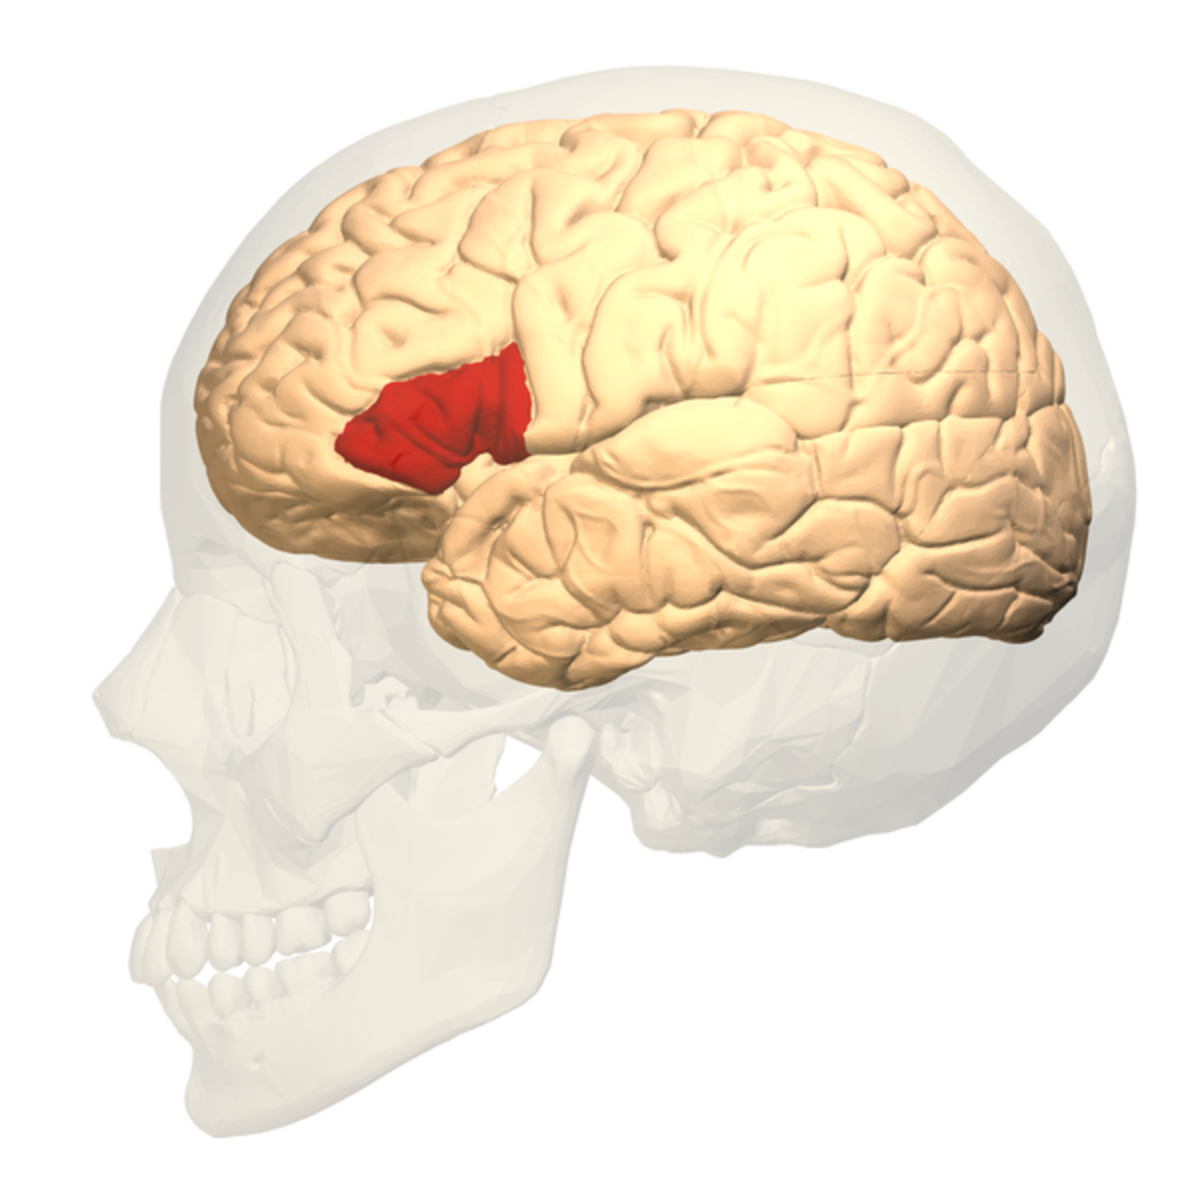 Broca's area (red) is located in the frontal lobe of the cerebrum (yellow), which is the largest part of the brain. The cerebral cortex is the surface layer of the cerebrum.